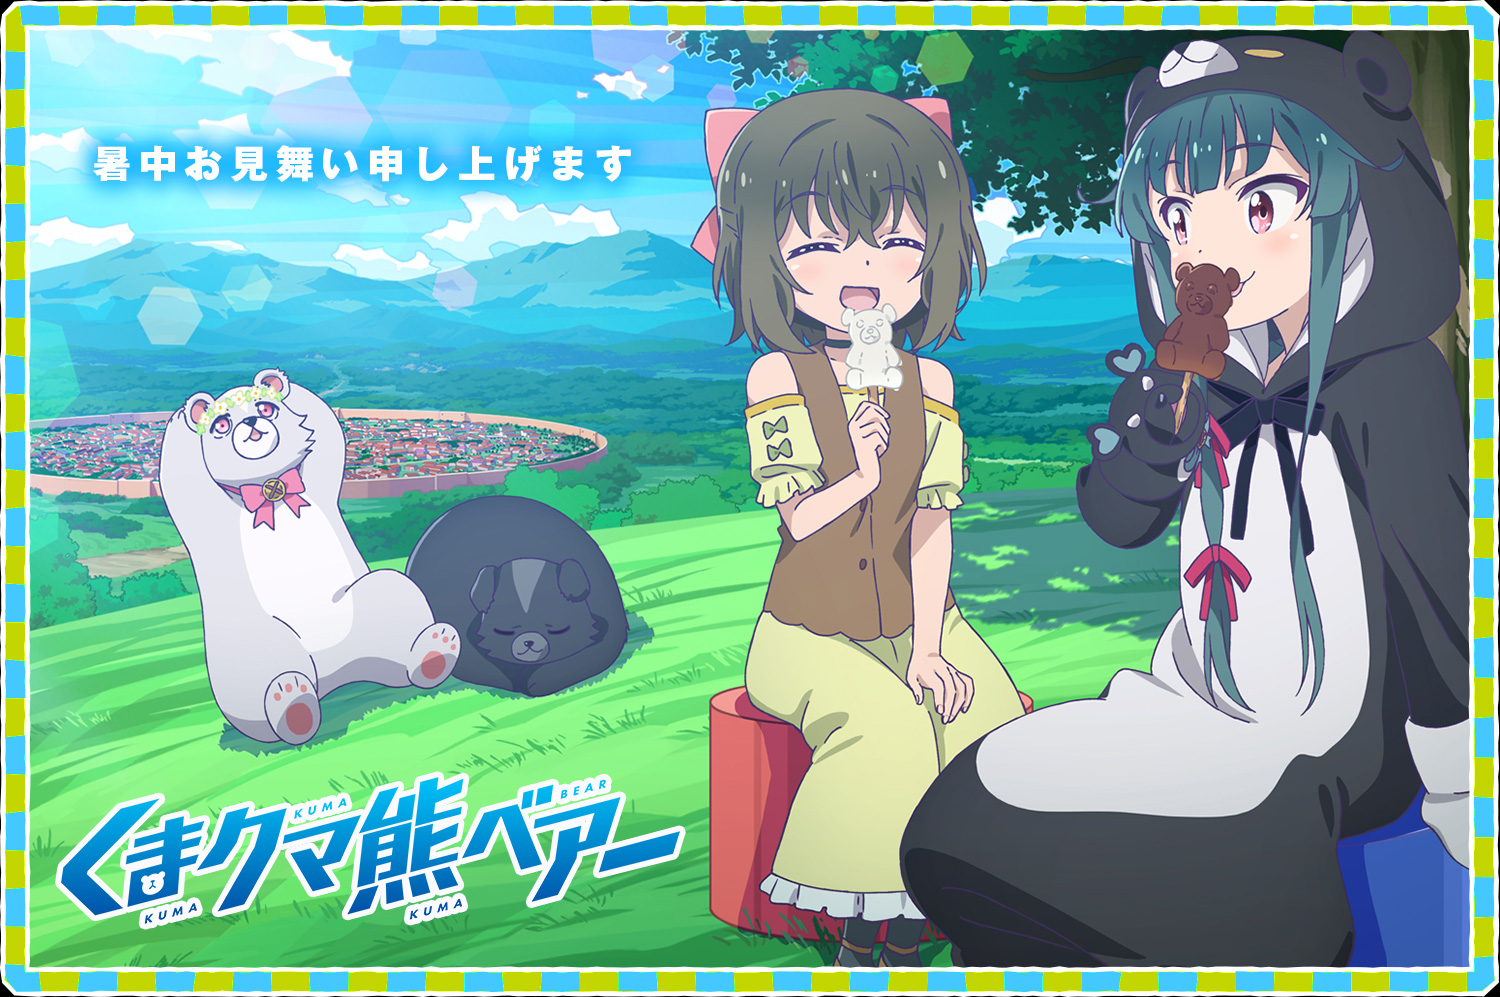 A summer greeting key visual for the upcoming Kuma Kuma Kuma Bear TV anime, featuring Yuna and Fina enjoying bear-shaped confections while Kumayuru and Kumakyuu laze about on a sunny hillside.